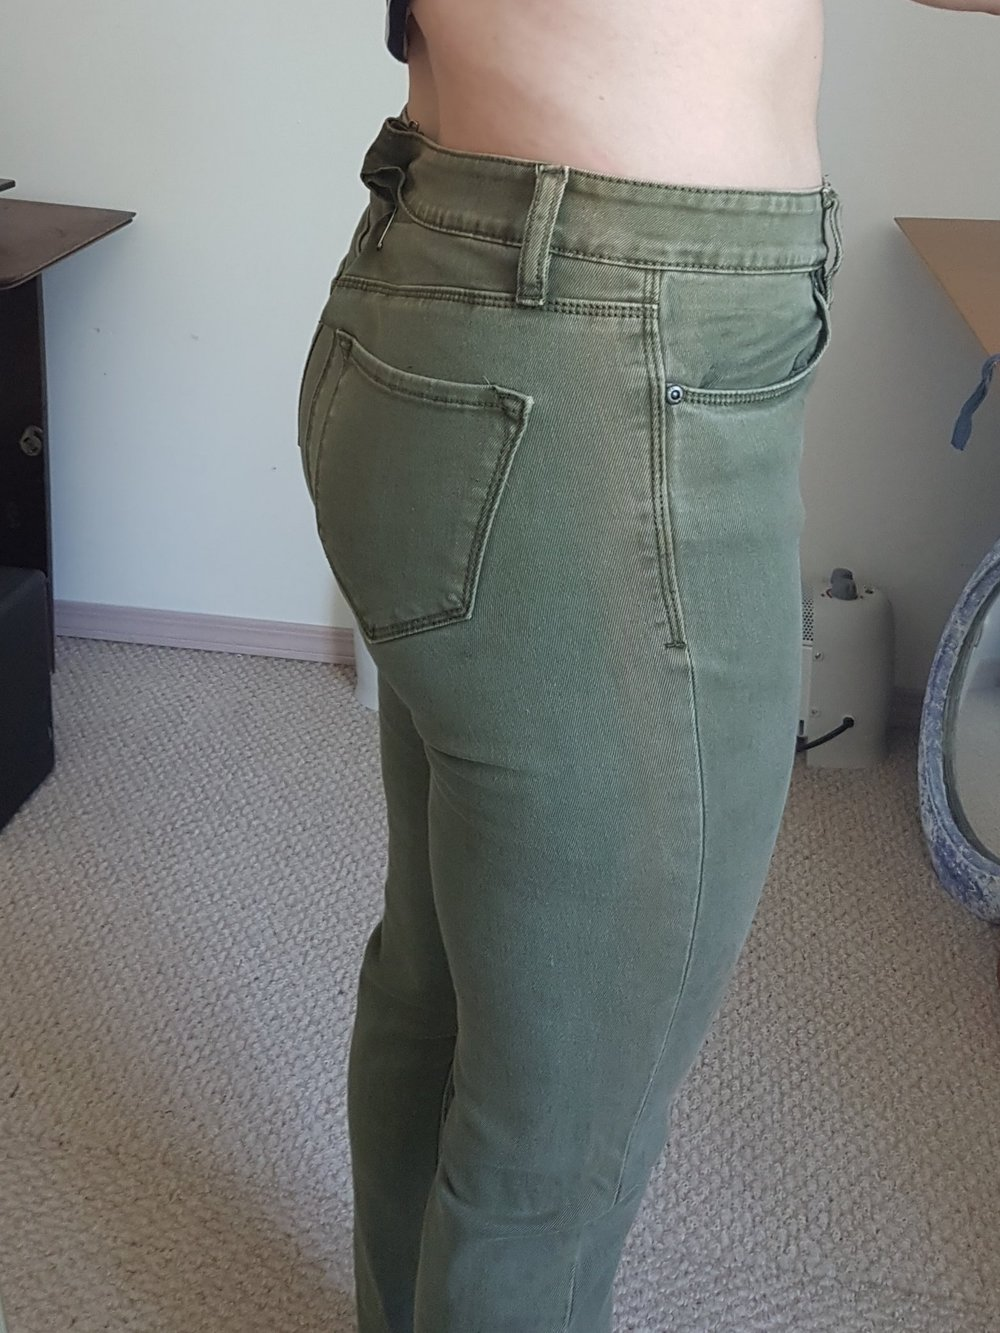 After sewing the new seam I gave the jeans a try-on to make sure they fit.